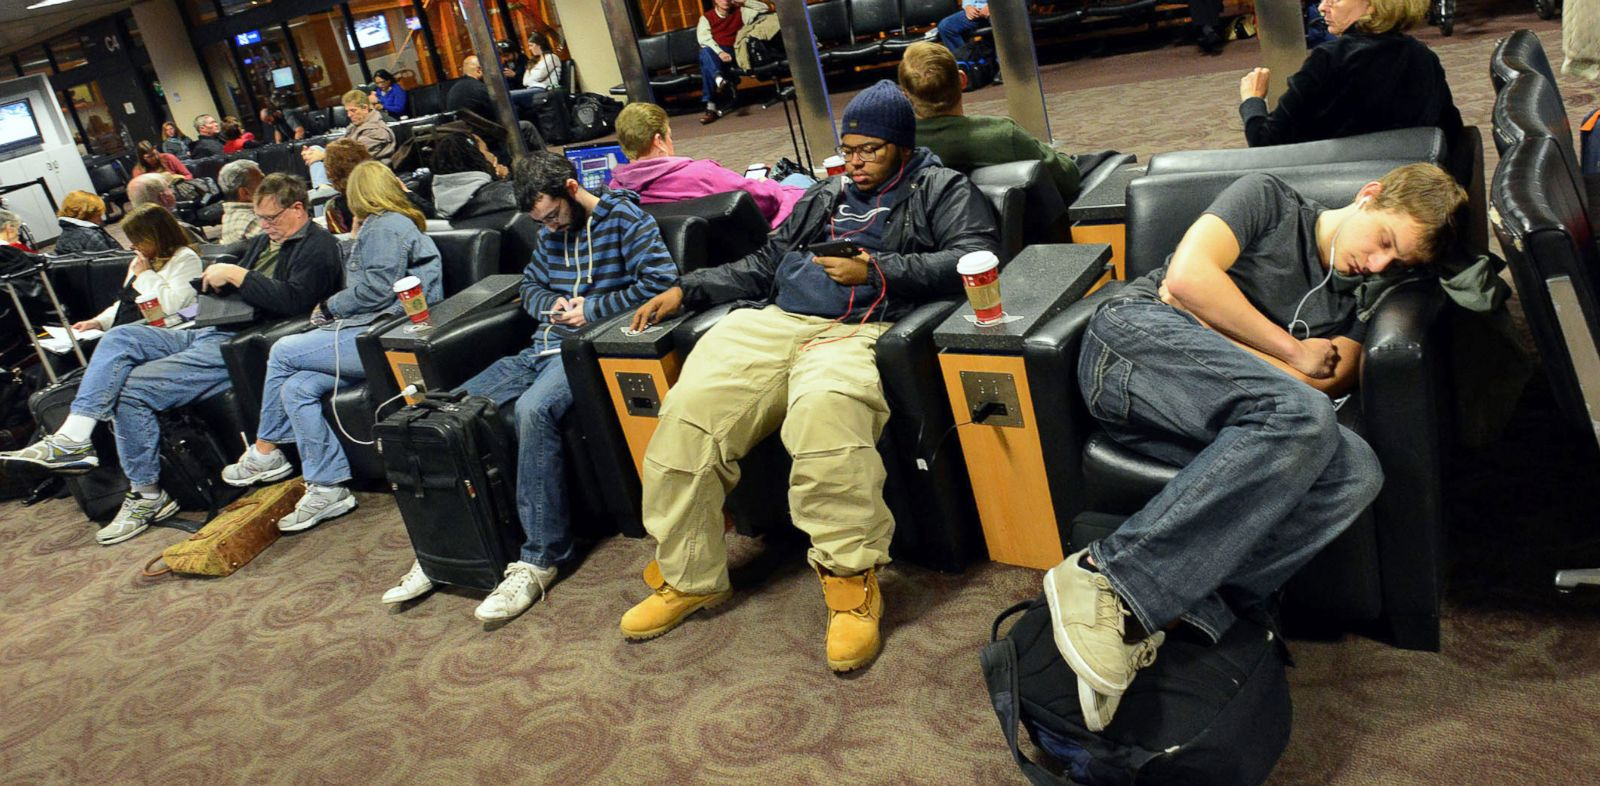 PHOTO: Travelers wait for a flight at a terminal gate at Phoenix Sky Harbor Airport in Phoenix on Nov. 26, 2013.